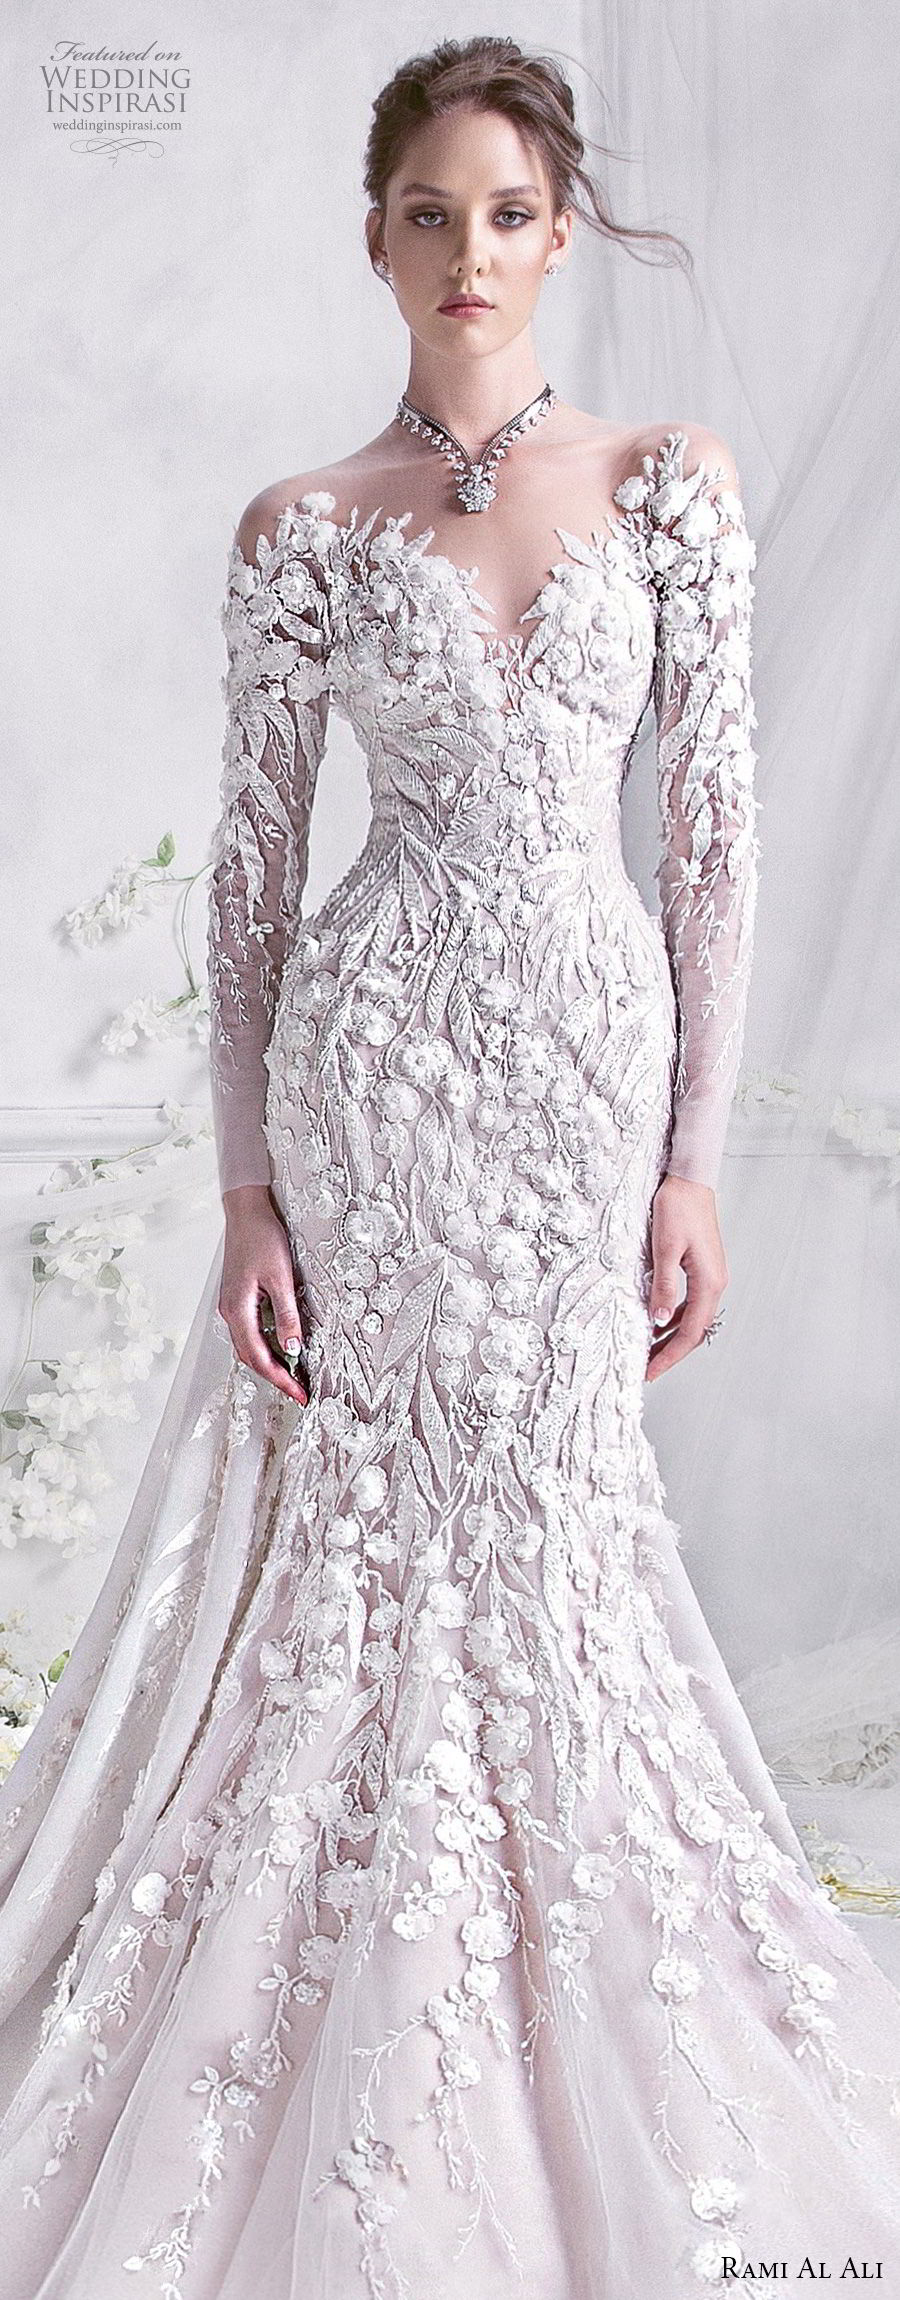 rami al ali 2018 bridal long sleeves off the shoulder sweetheart neckline full embellishment glamorous elegant trumpet fit flare mermaid wedding dress royal train (6) lv